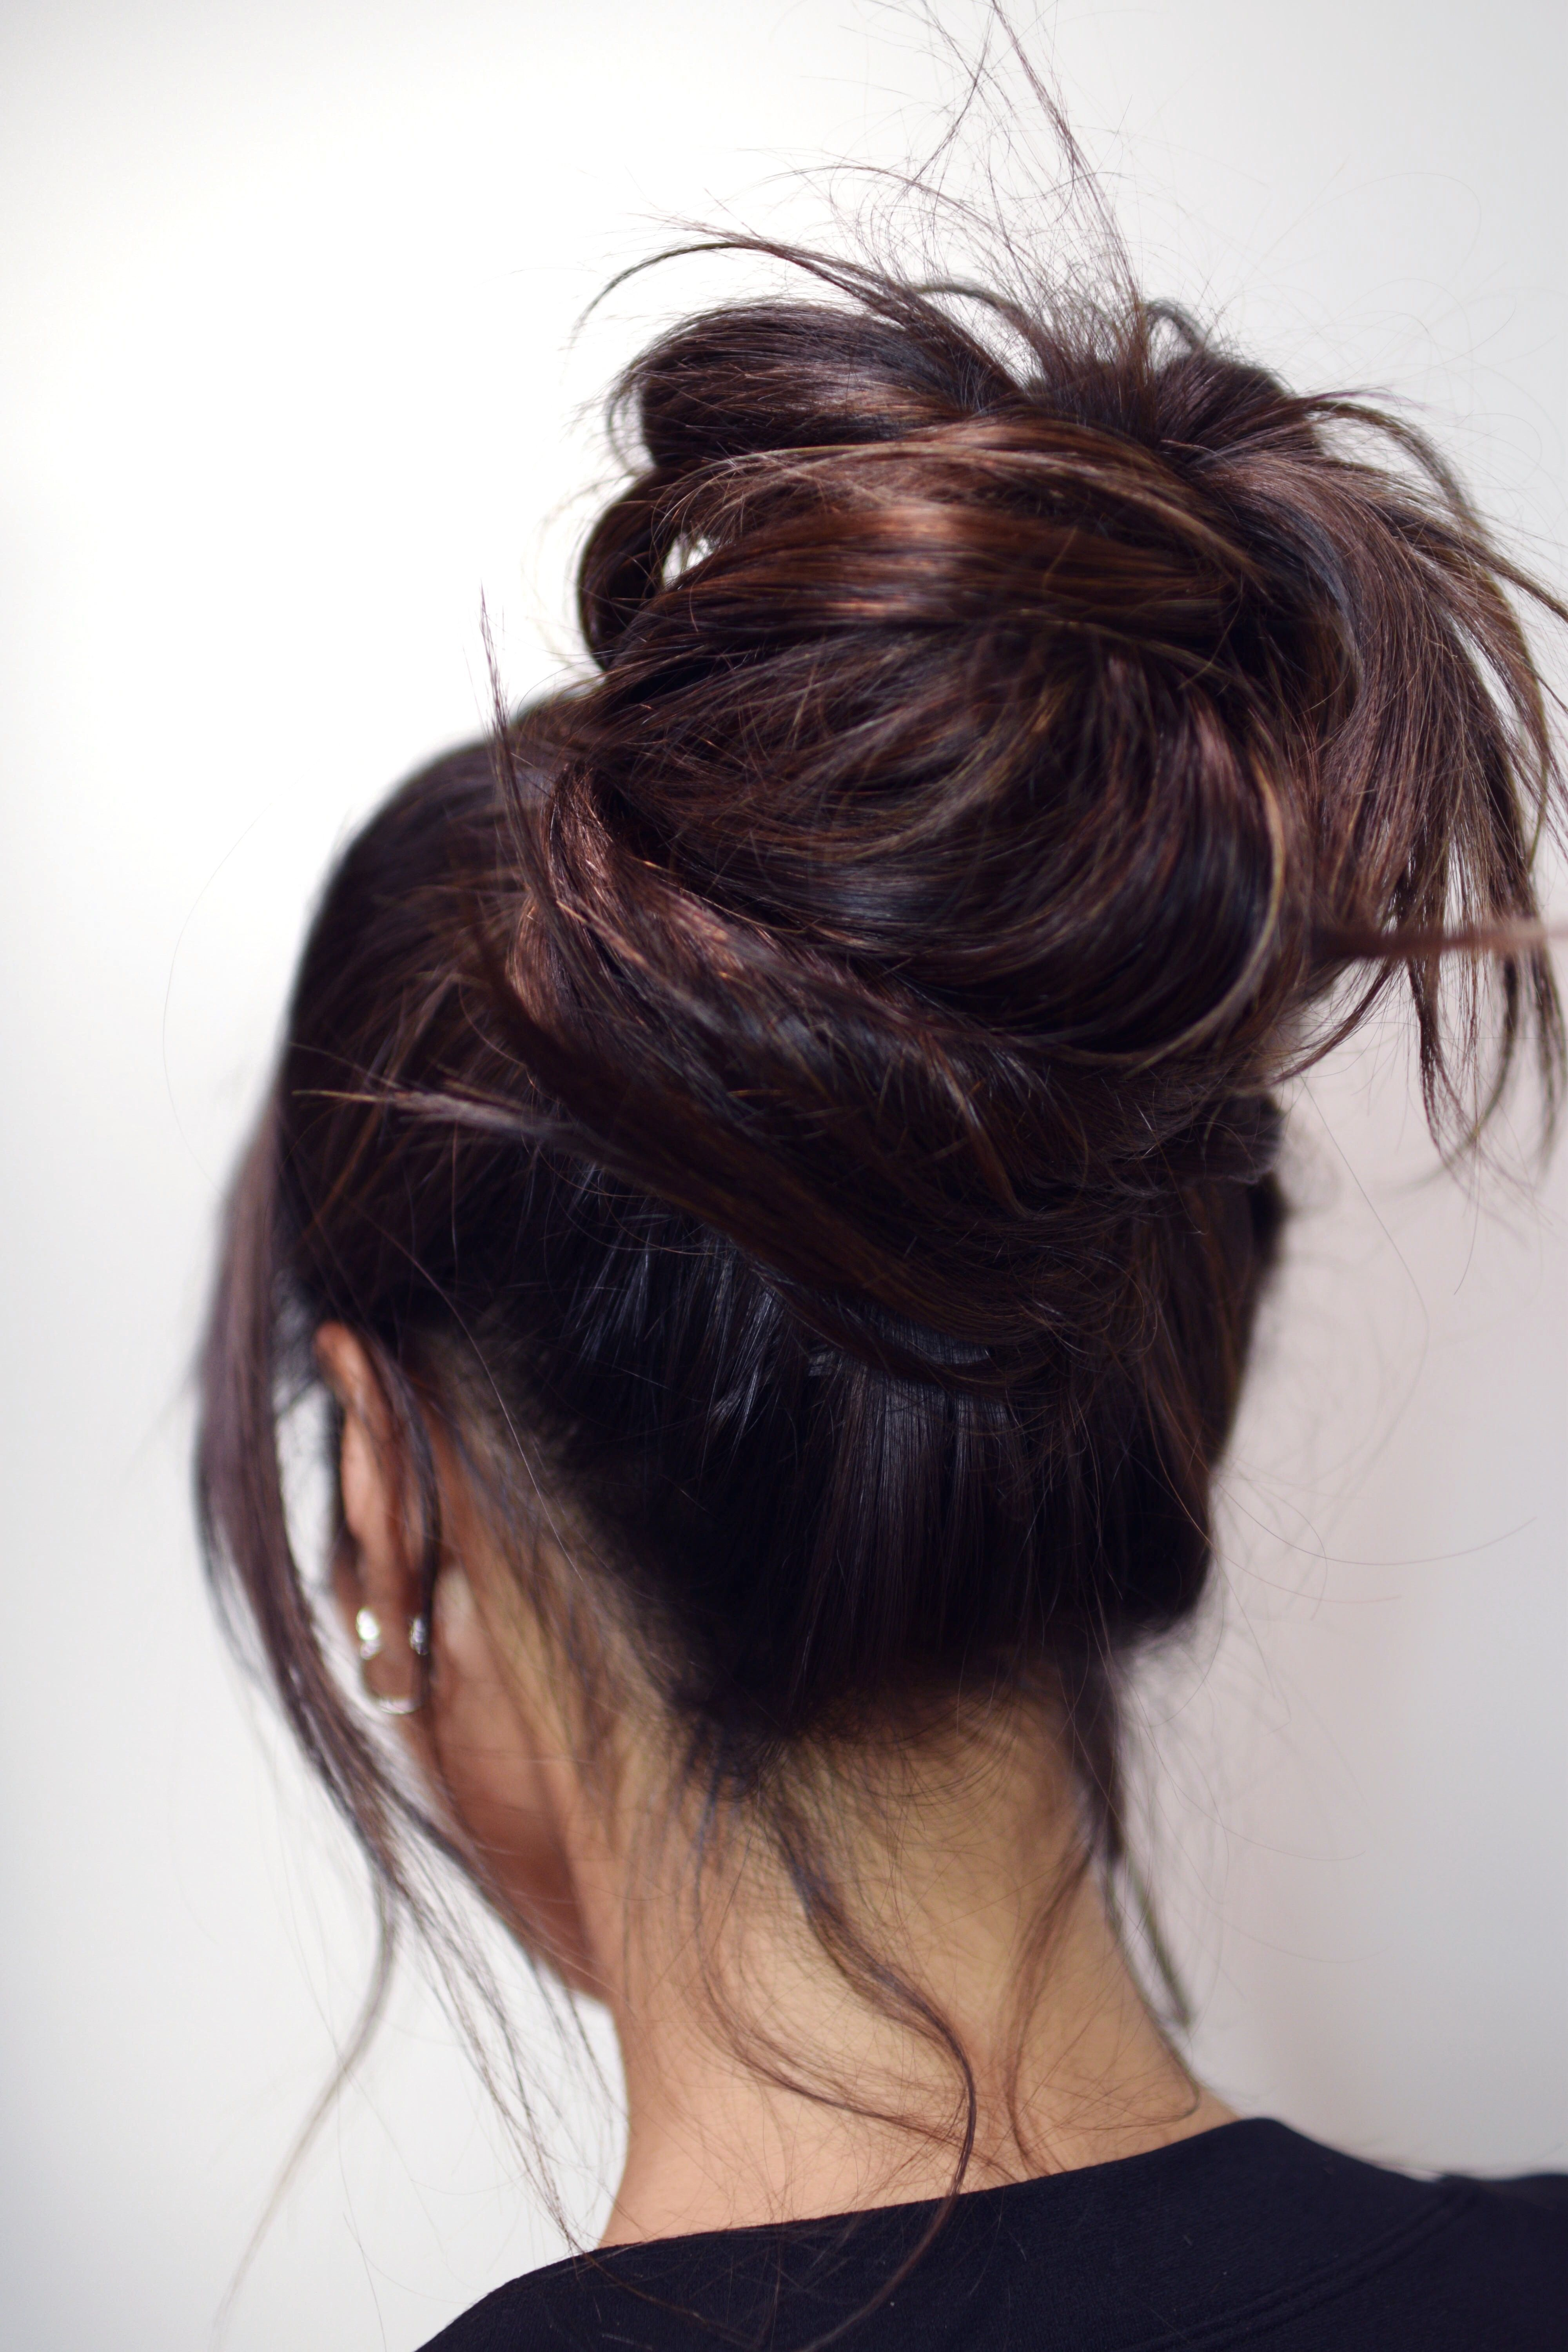 Bun hairstyles, Bun hairstyles for long hair, Bun hairstyles easy